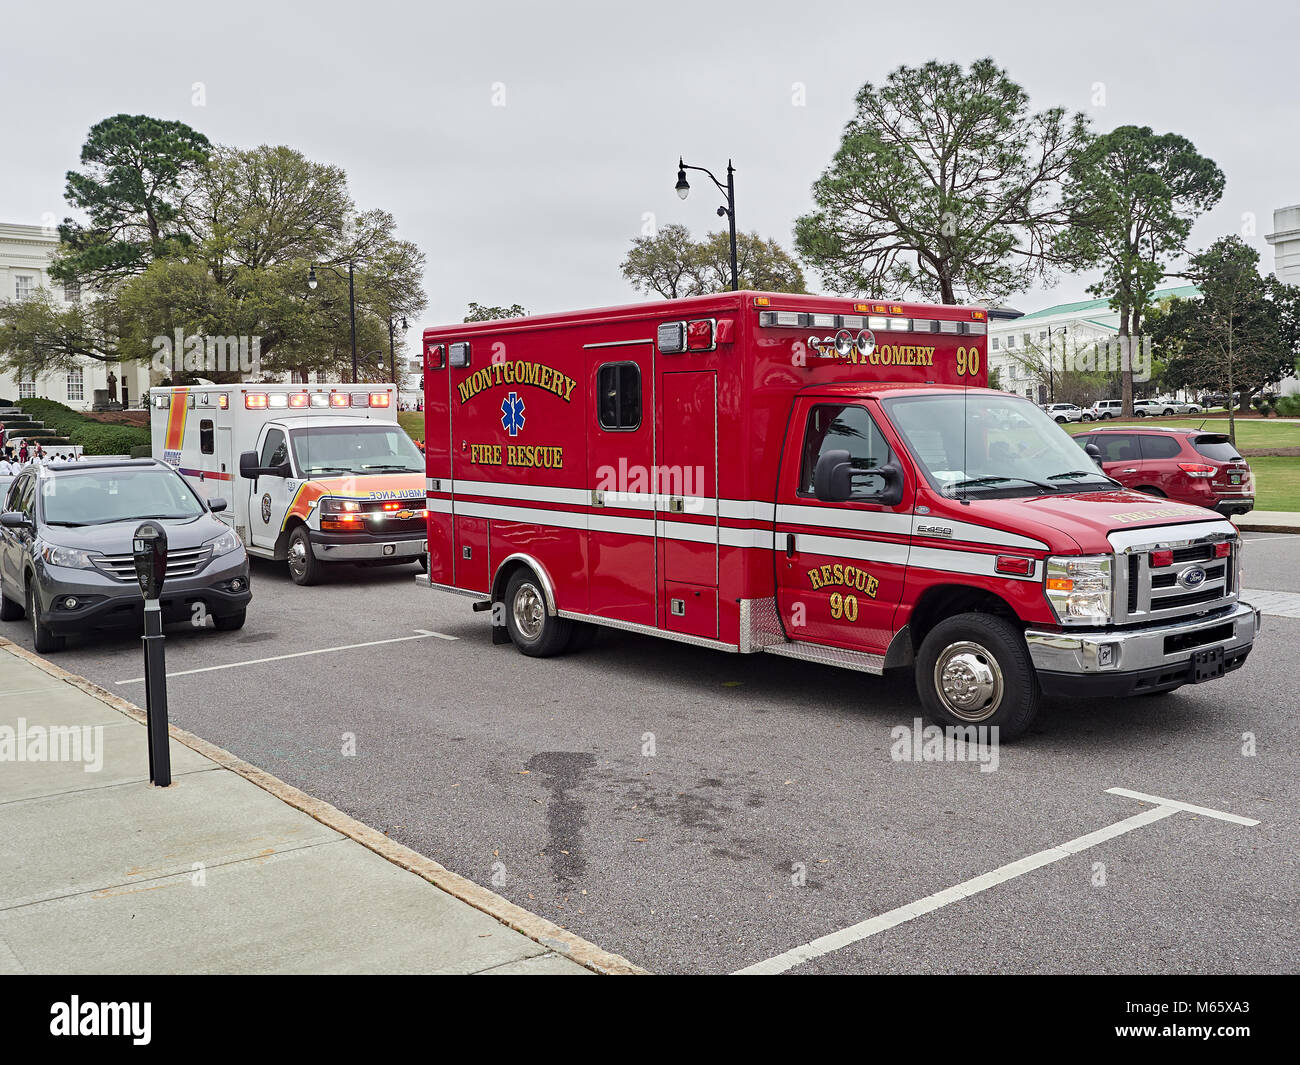 Fire Rescue paramedic ambulance with a Haynes Ambulance parked behind responding to a medical emergency in Montgomery - Stock Image